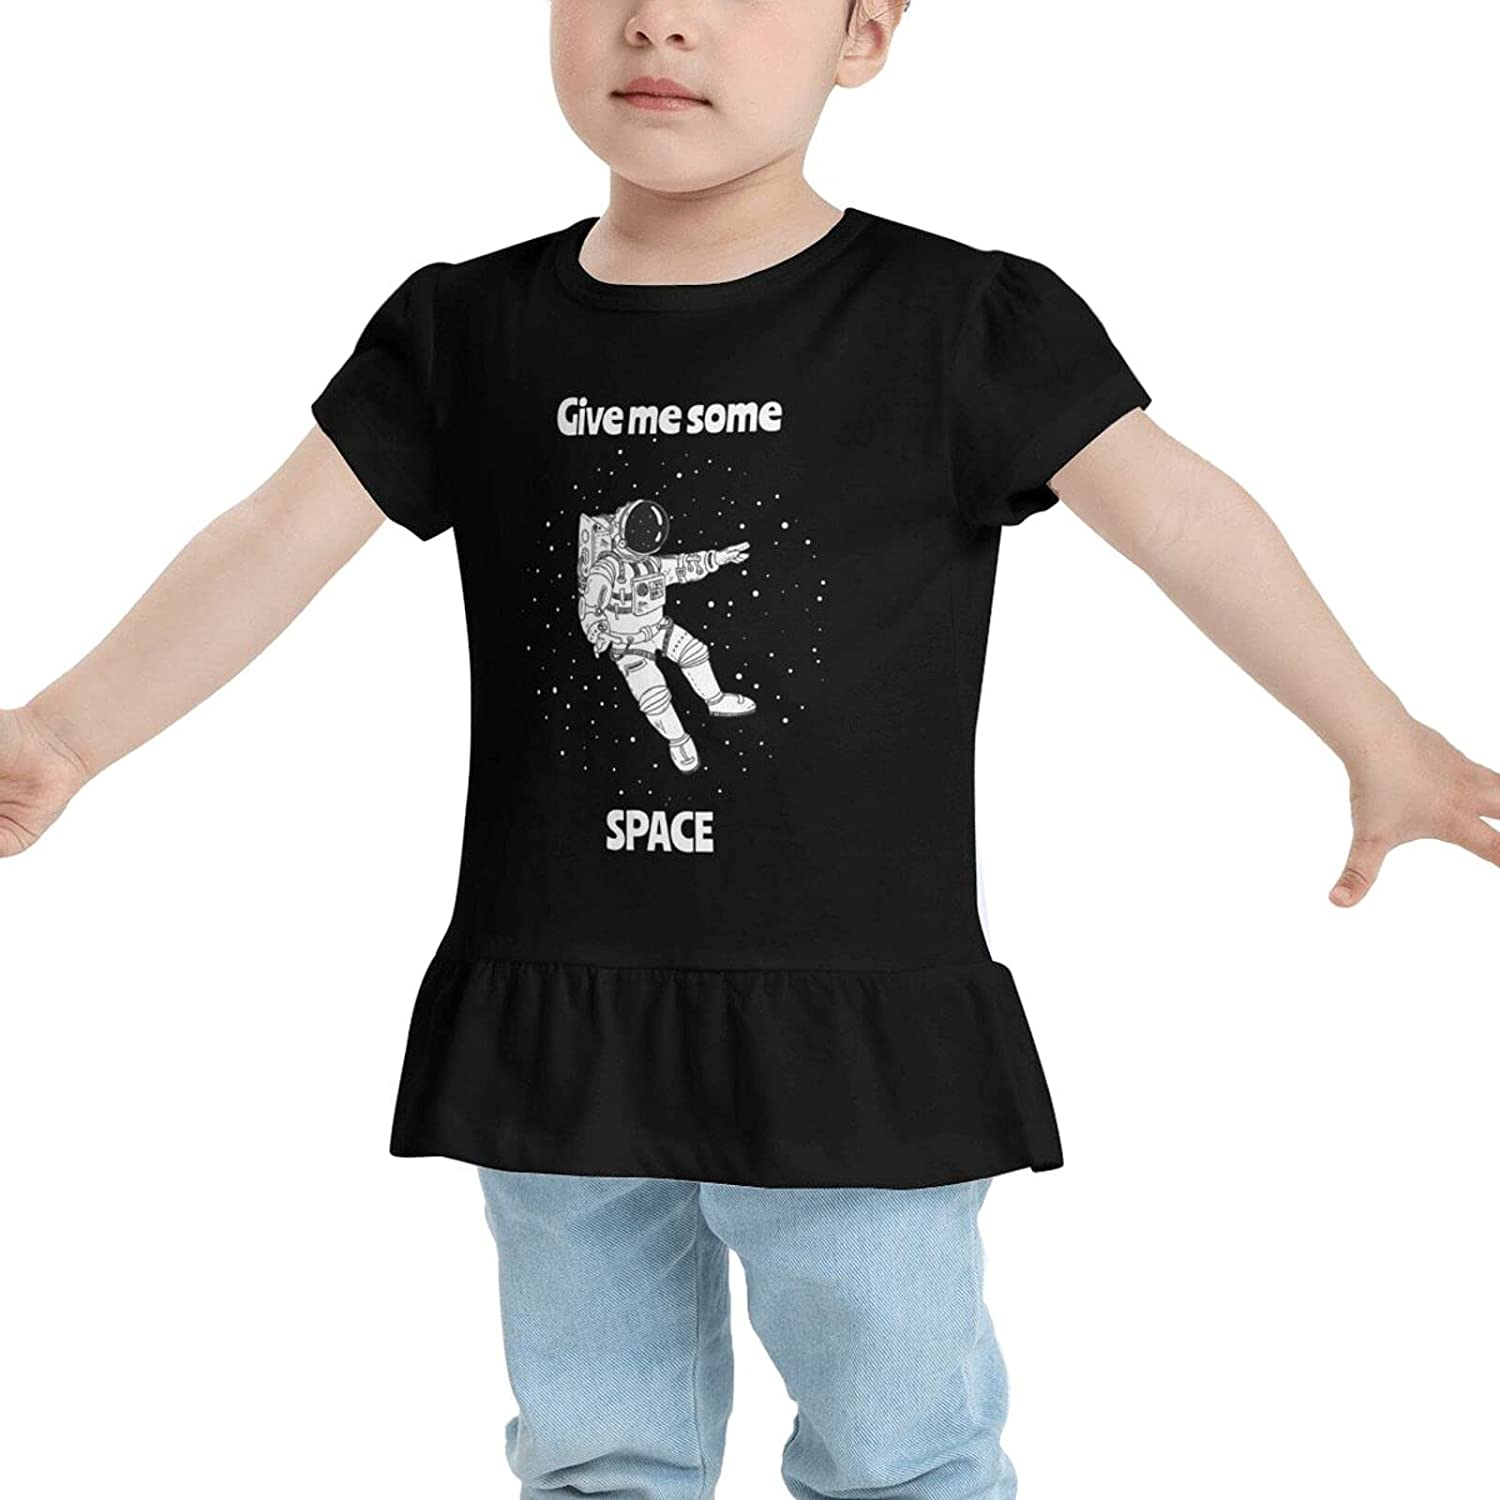 Astronaut Give Me Some Space Baby's Girls Cotton T-Shirt Tees Dresses